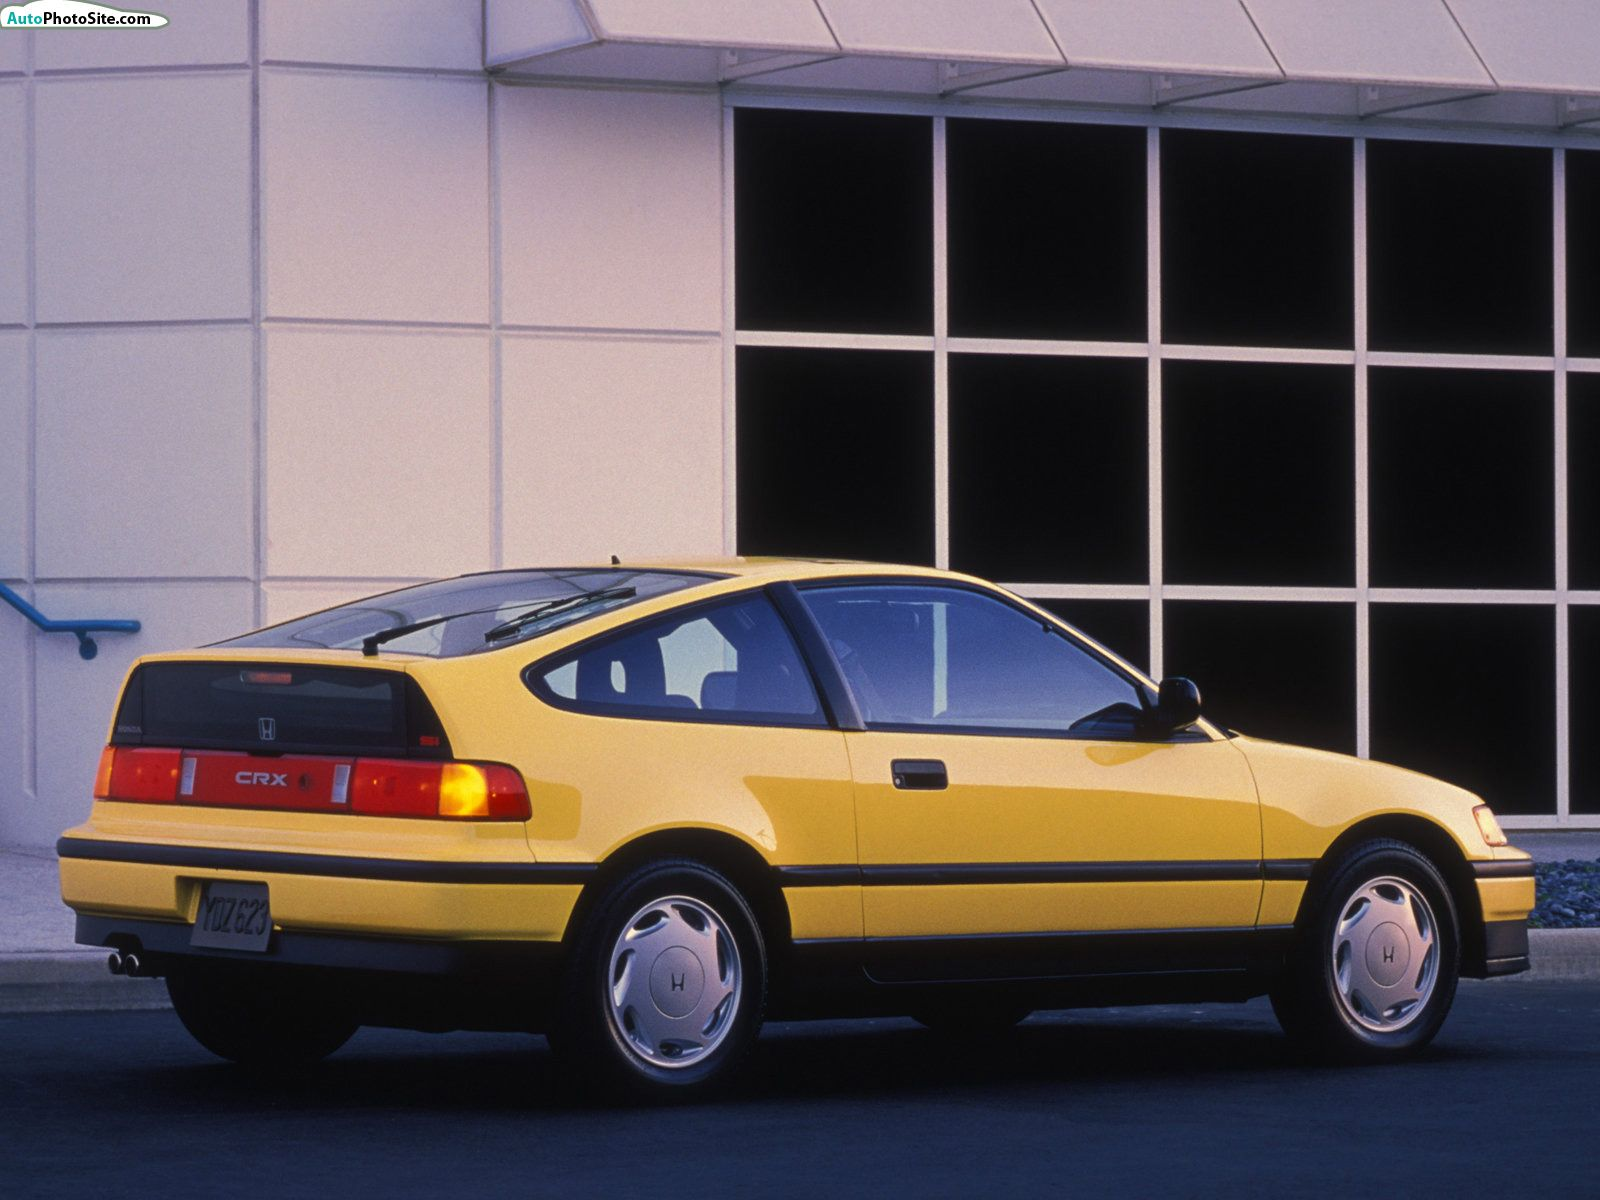 honda civic crx si 1988 review top 10 photo video and pictures [ 1600 x 1200 Pixel ]